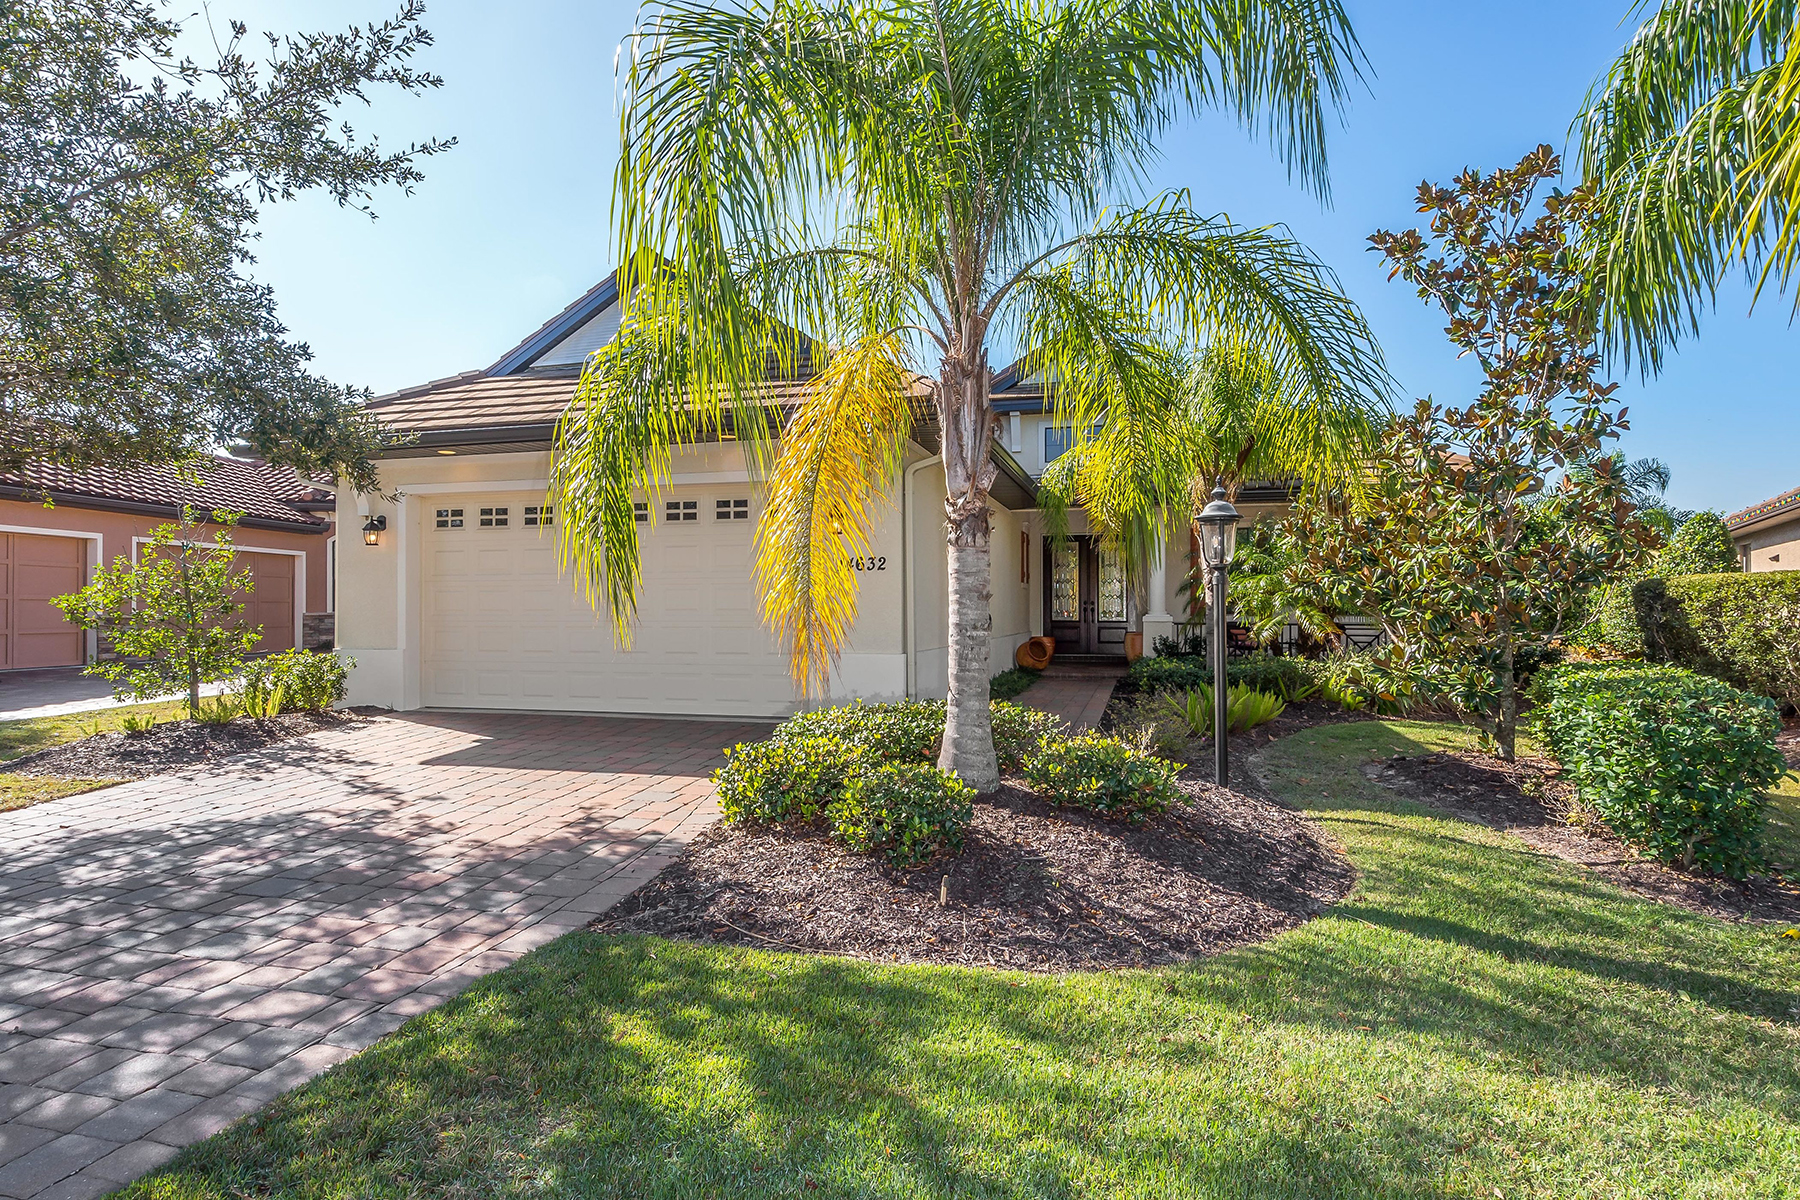 Single Family Home for Sale at COUNTRY CLUB EAST 14632 Newtonmore Ln, Lakewood Ranch, Florida 34202 United States